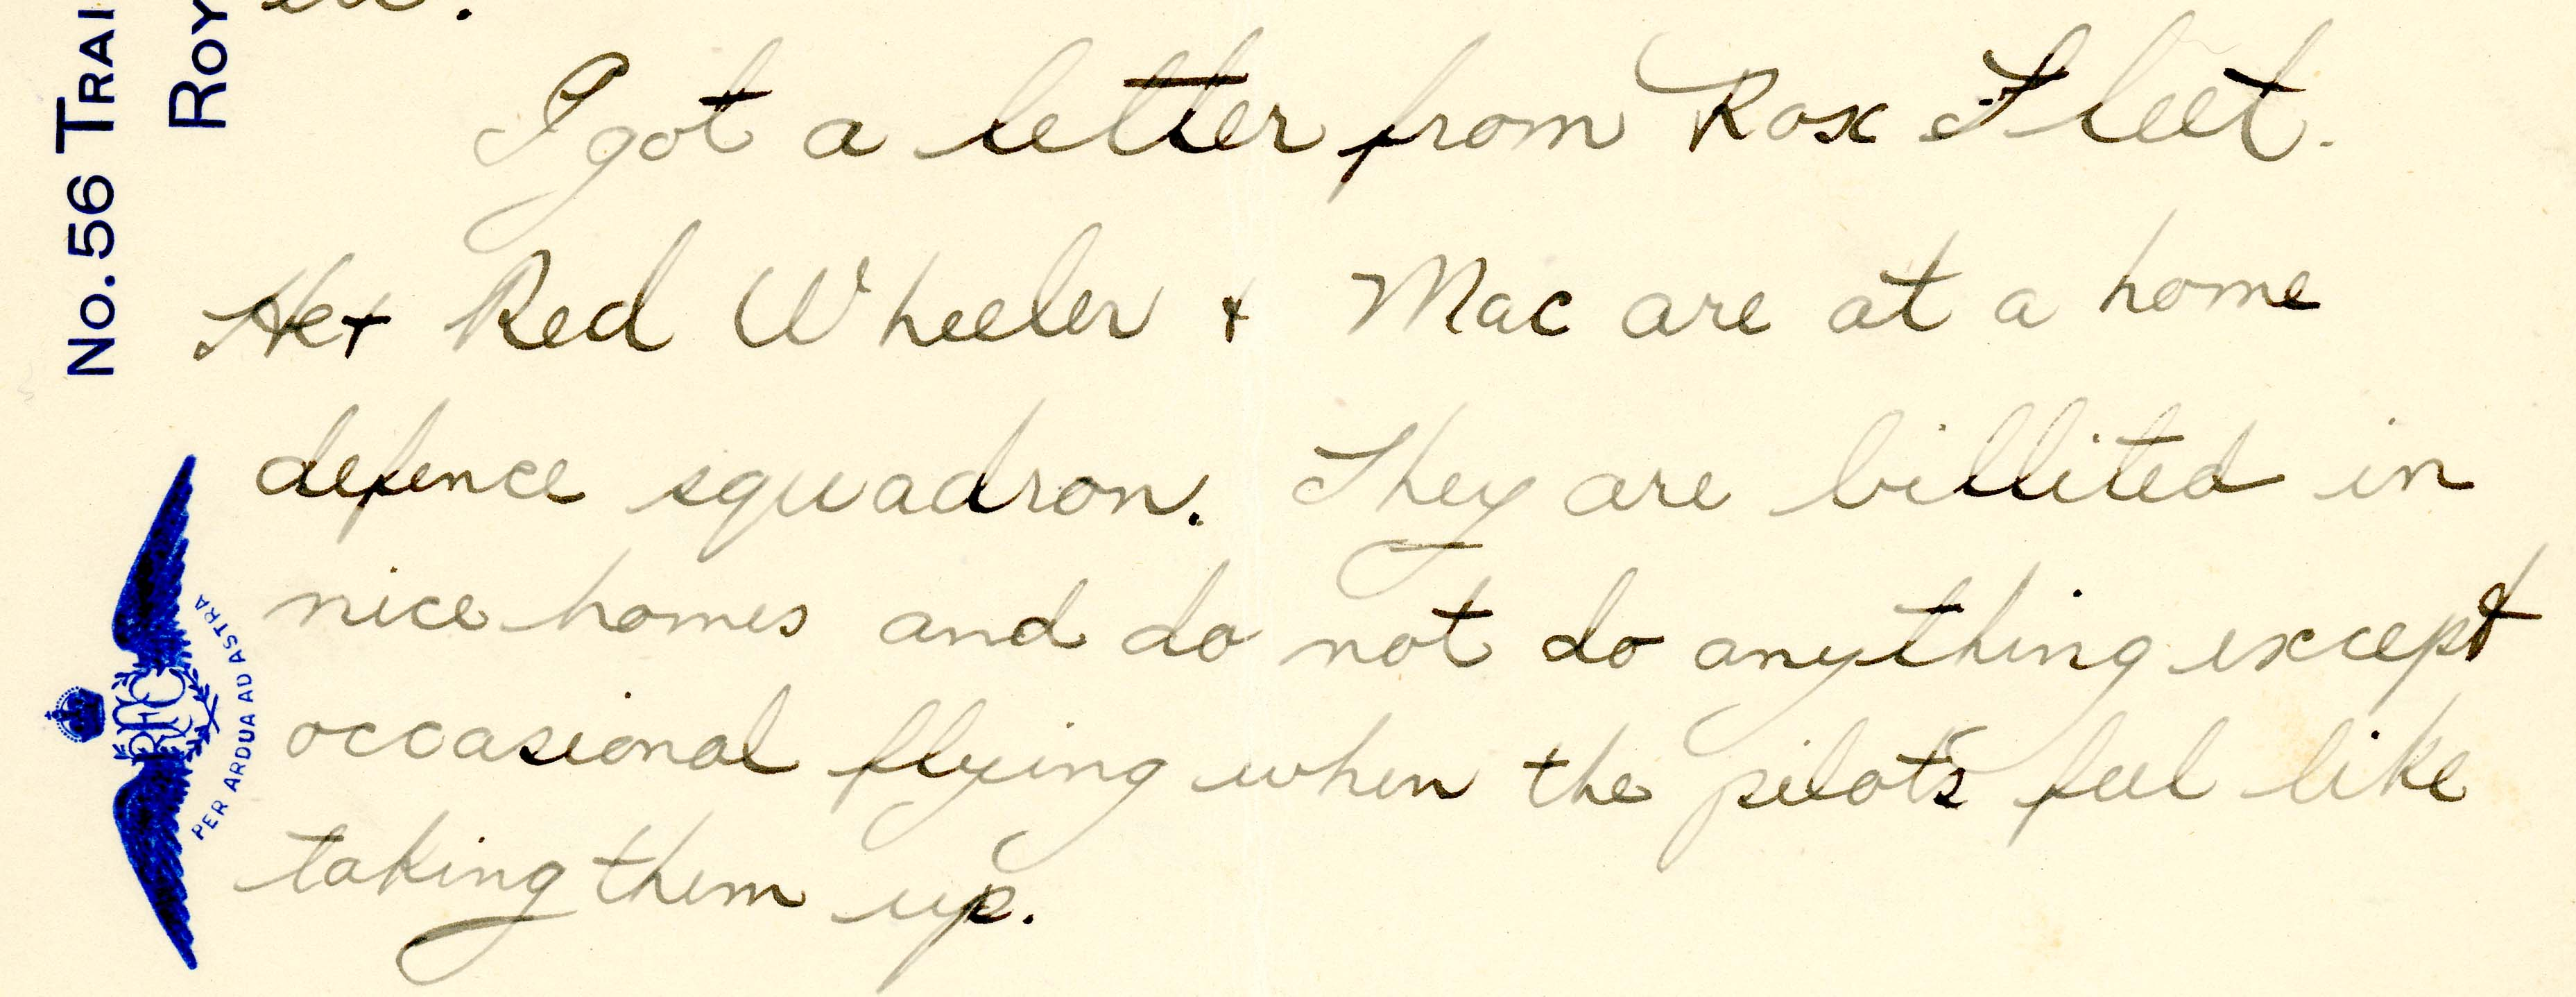 A portion of a letter by Hooper, who writes that Fleet, Wheeler, and Maloney are at a home defense squadron.